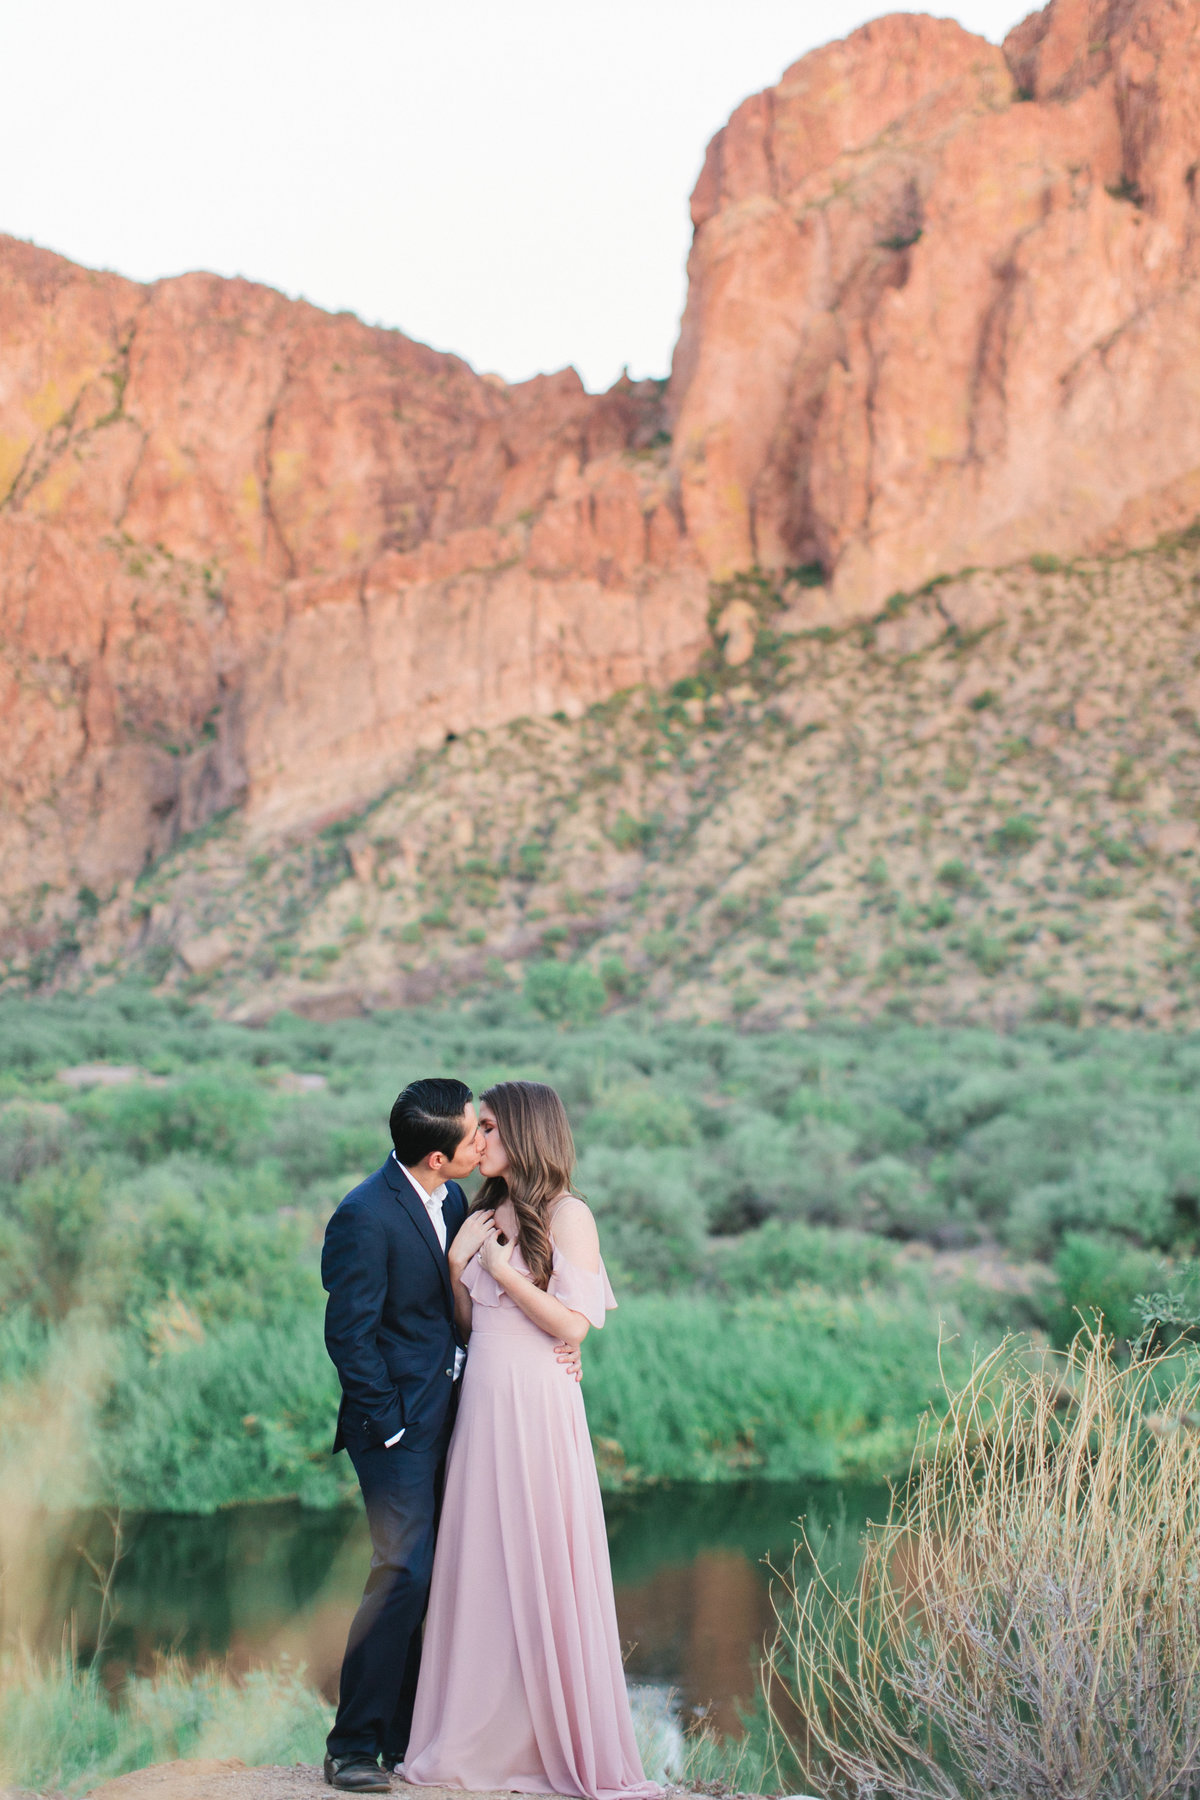 BarrientosEngagementWEBSITE-10